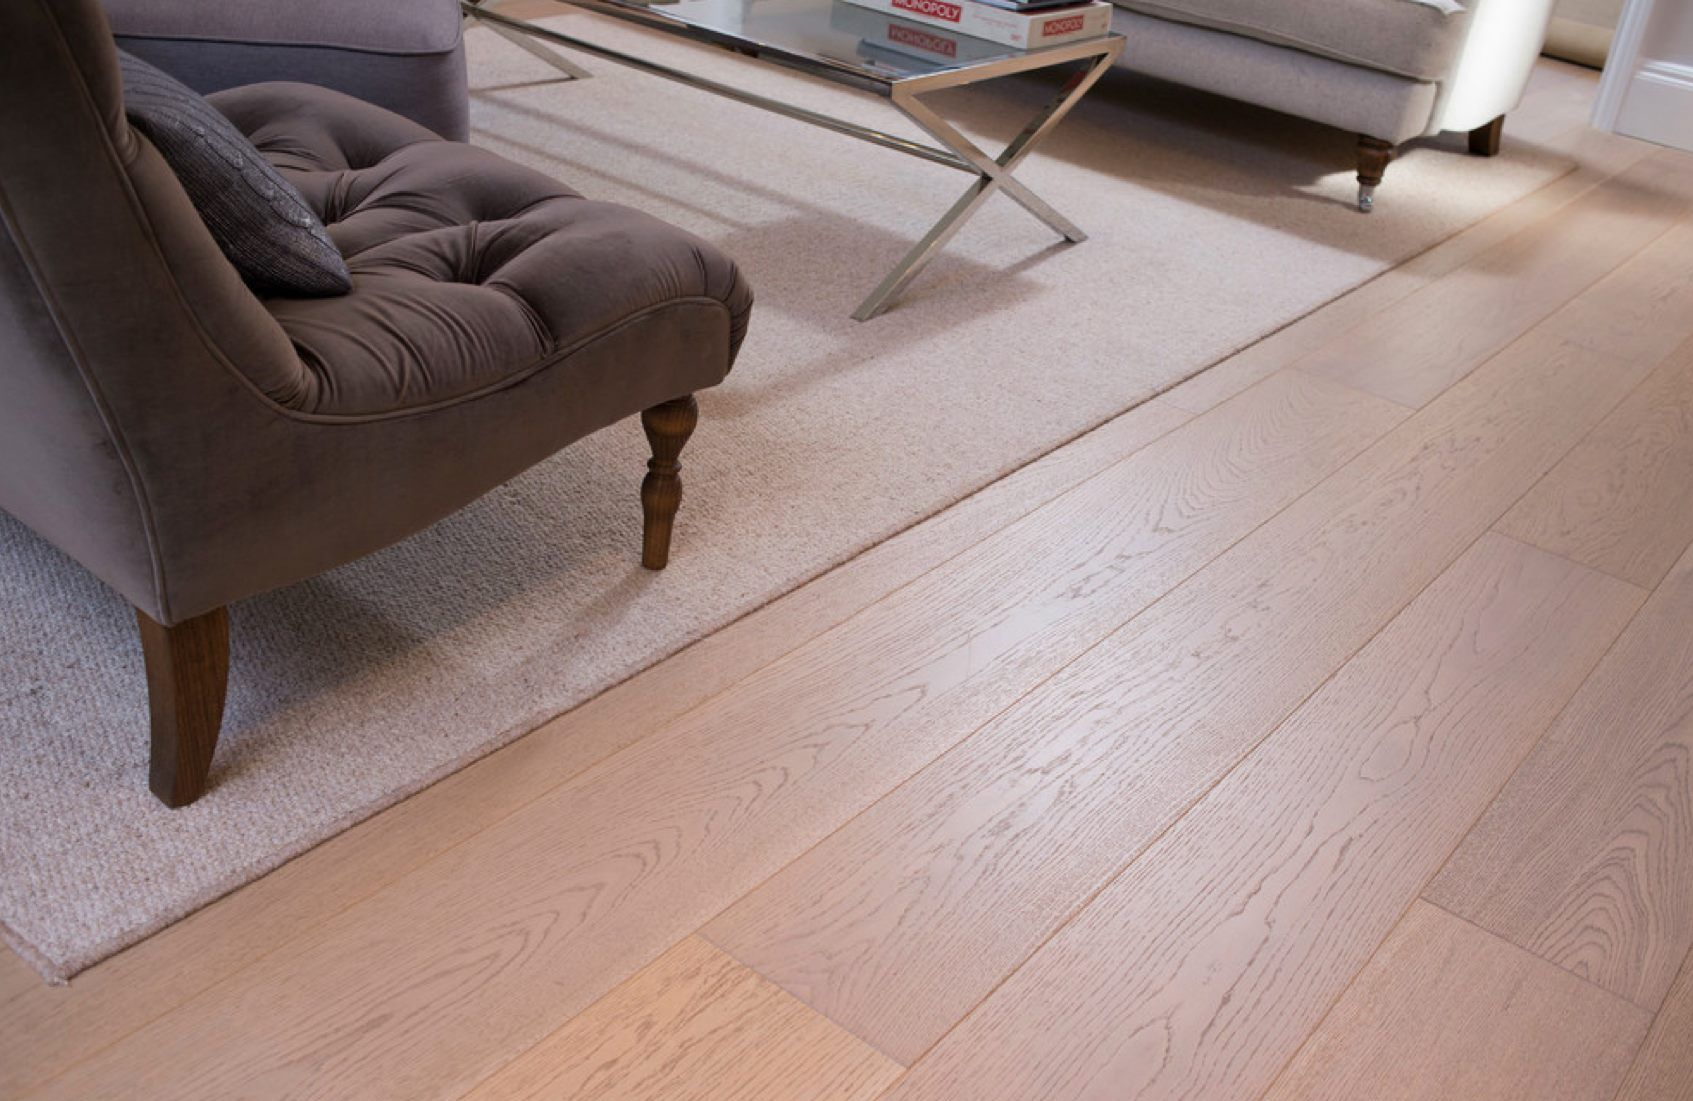 Prefinished solid hardwood flooring should you would you for Prefinished hardwood flooring pros and cons